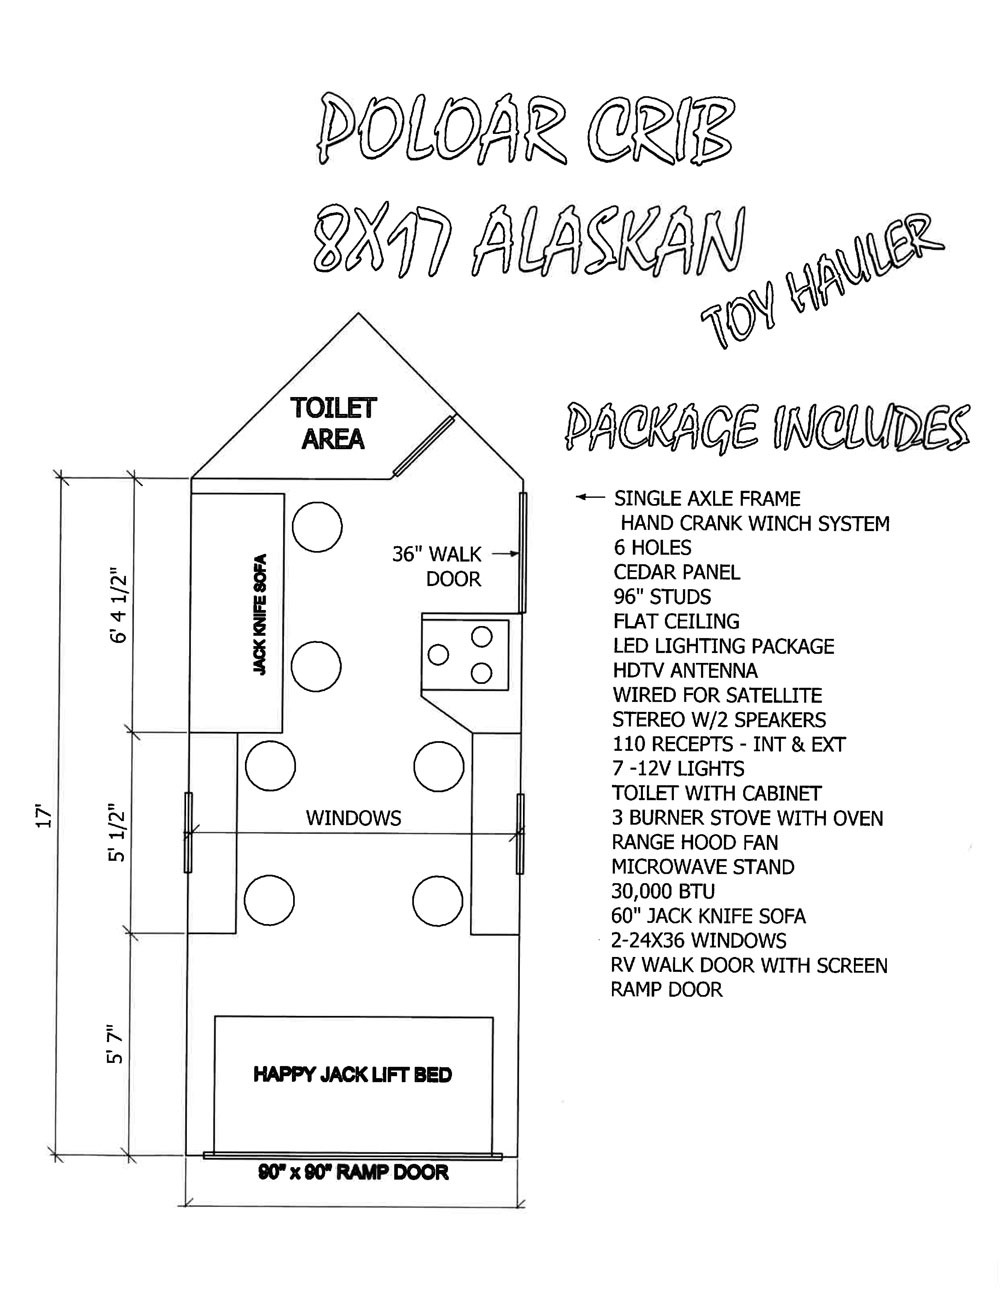 10 Polar Crib Alaskan Toy Hauler Floor Plan